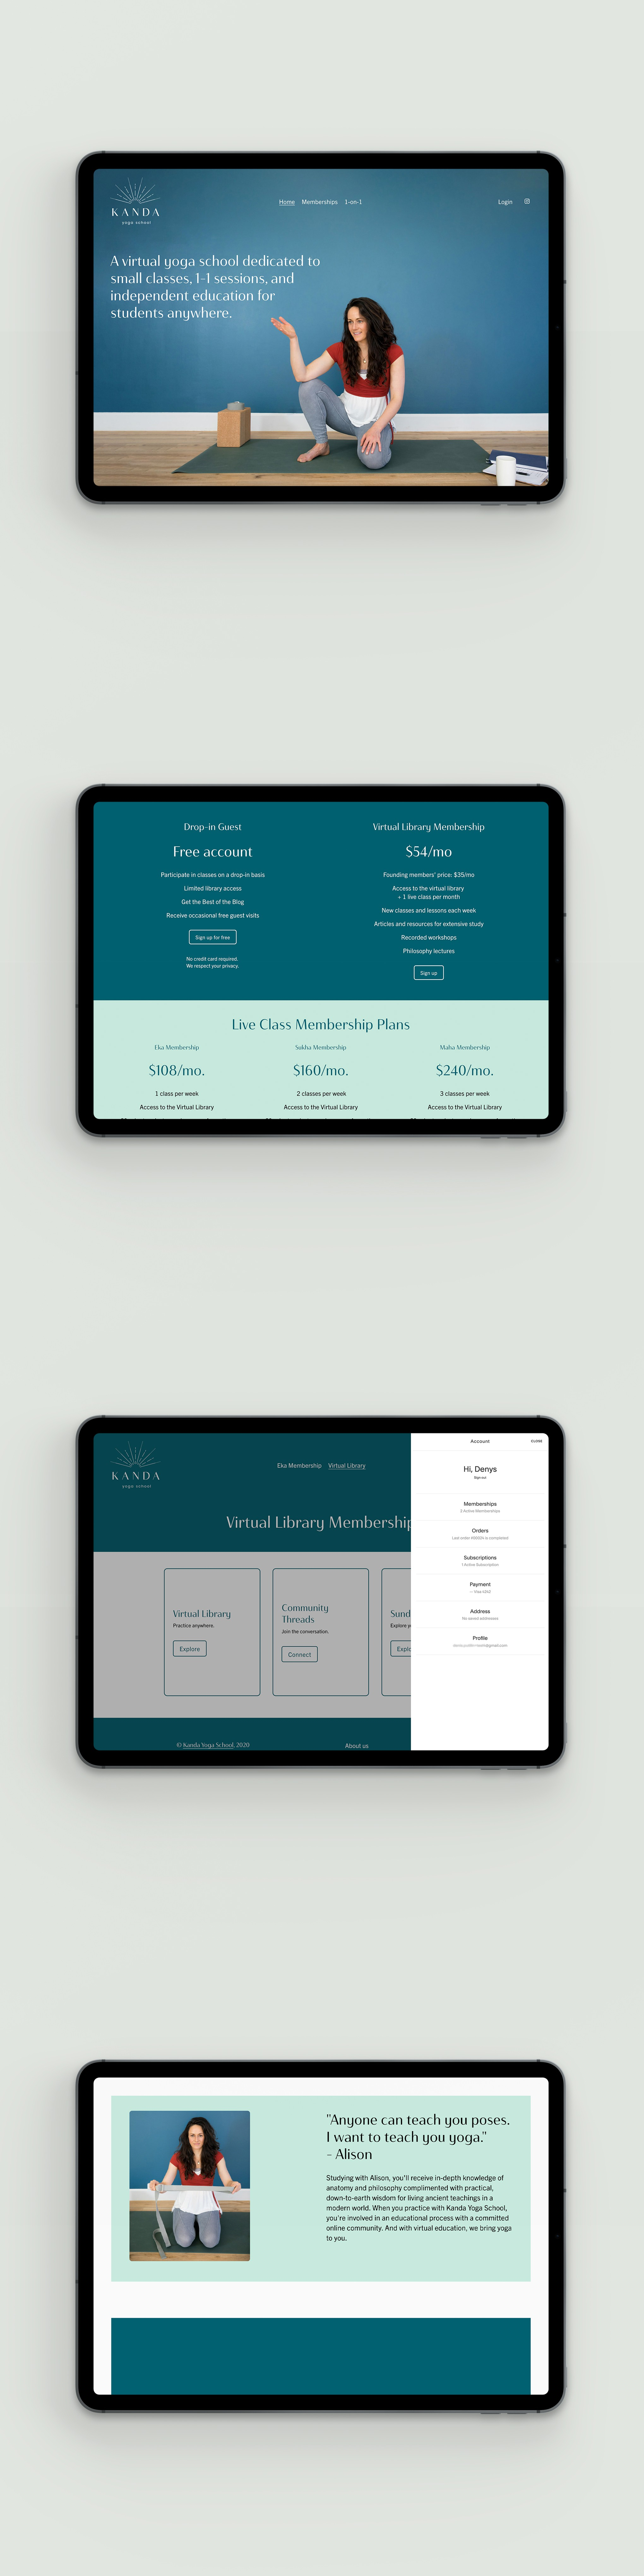 Website redesign with Member Areas